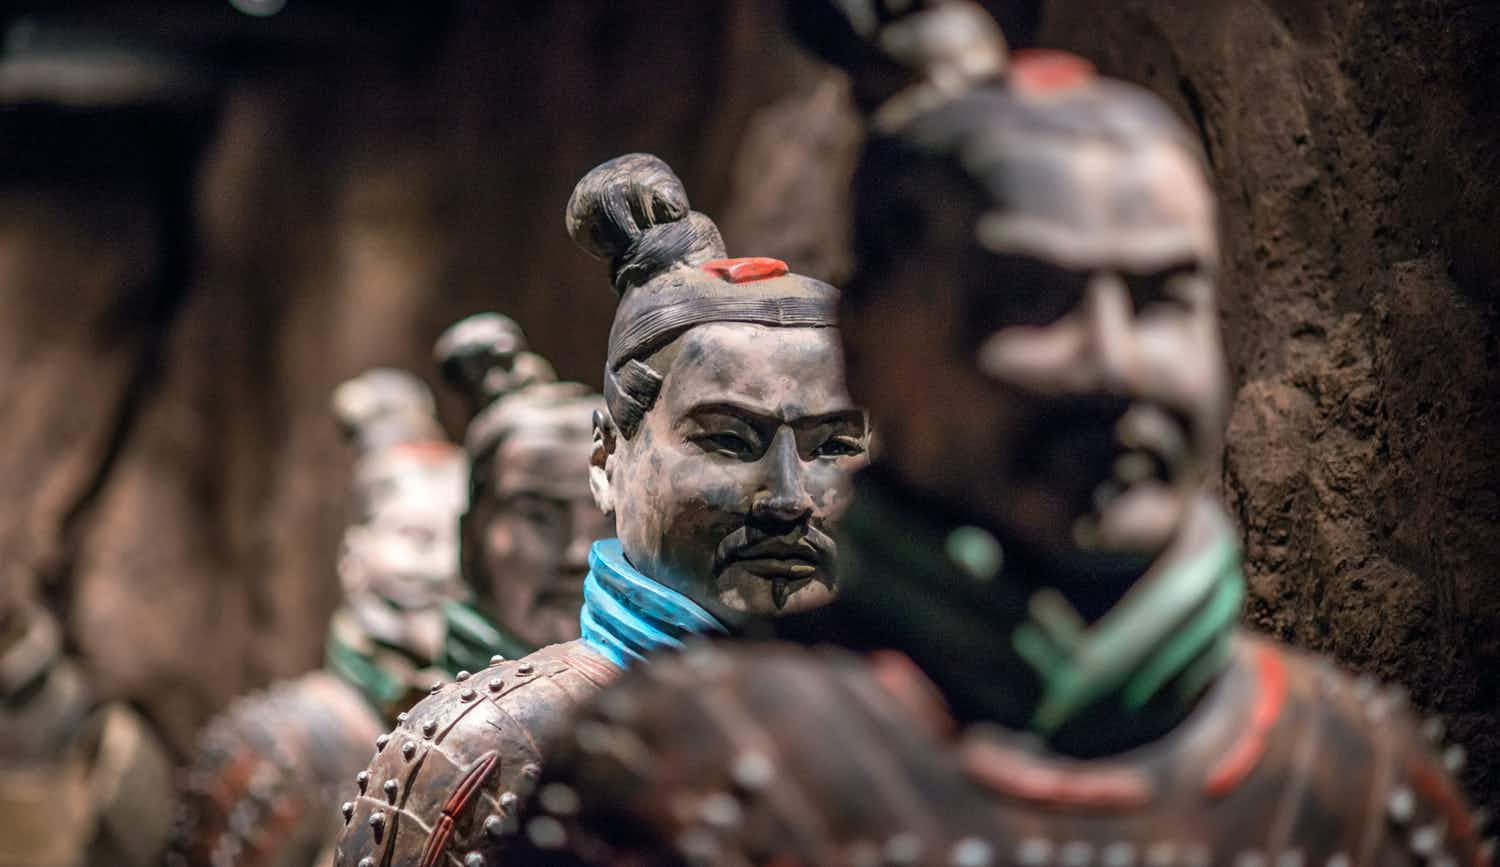 Warriors from China's Terracotta Army coming to Philadelphia this fall